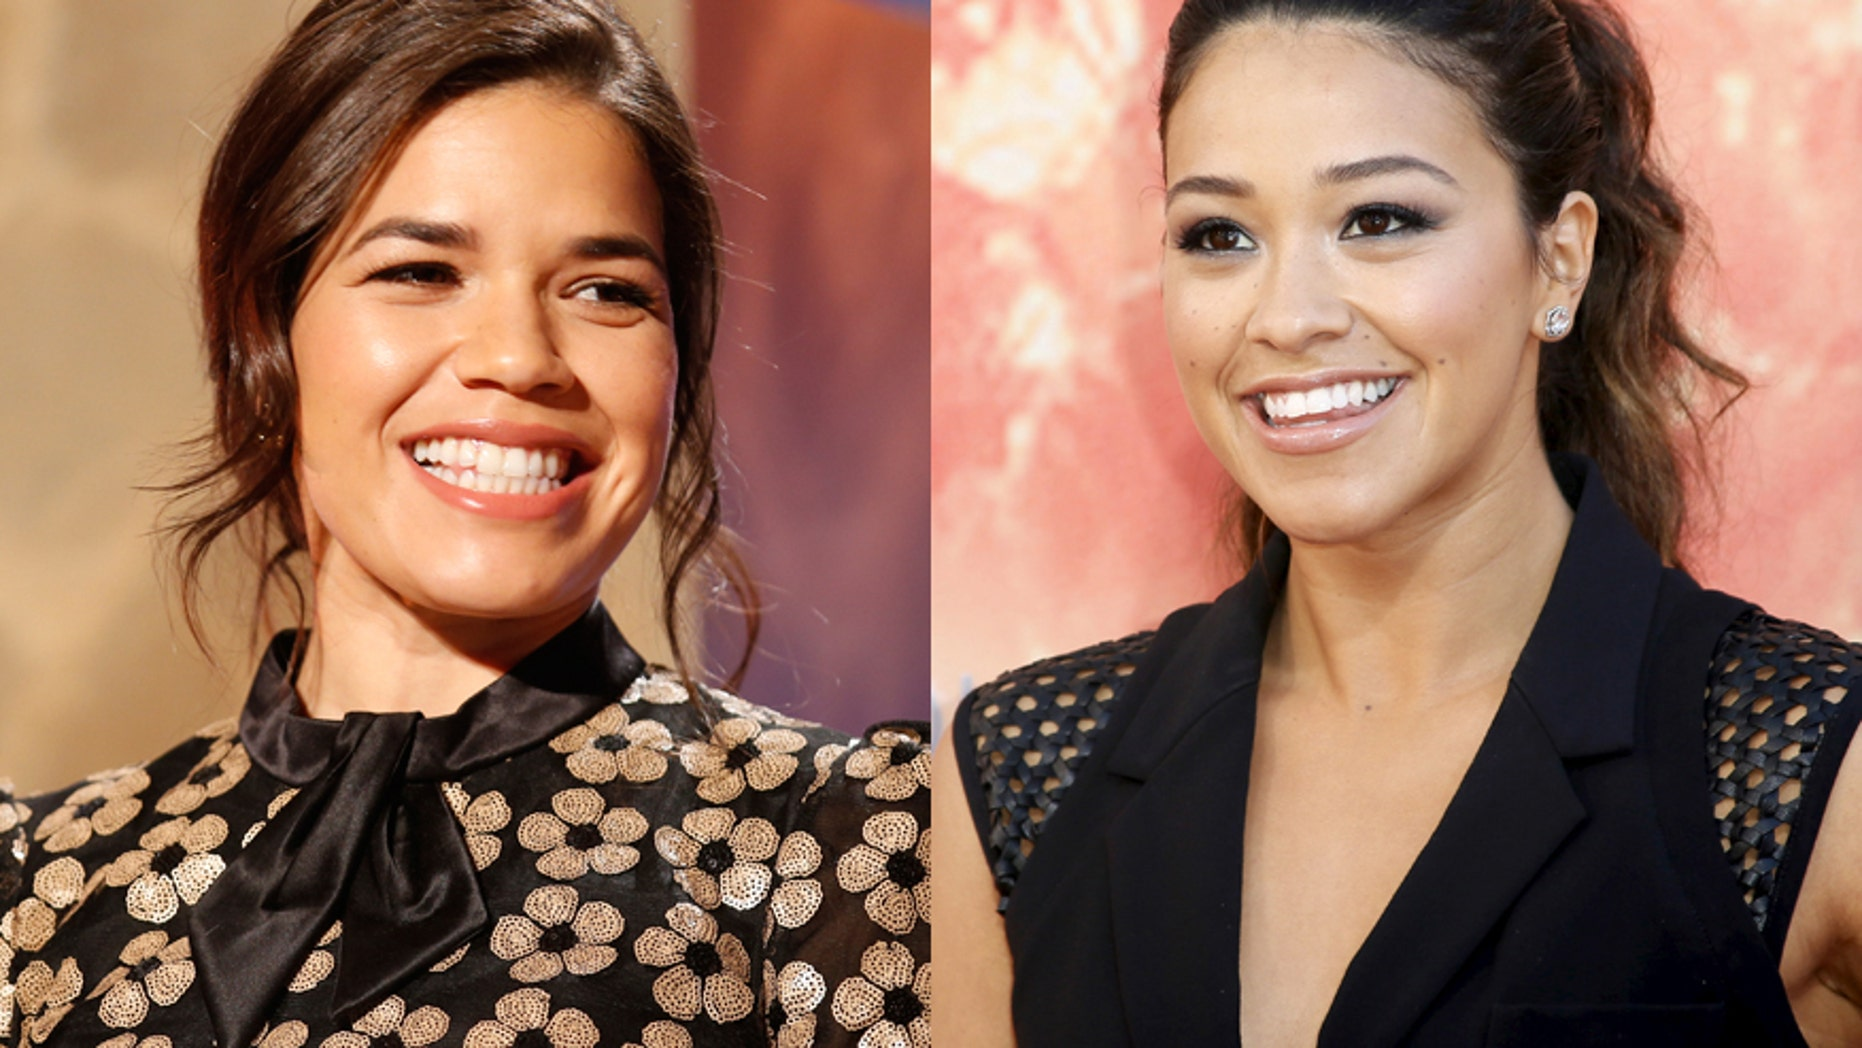 Actress America Ferrera (left) sits on stage during nominations for the 73rd annual Golden Globe Awards in Beverly Hills, California December 10, 2015. Actress Gina Rodriquez on the right.